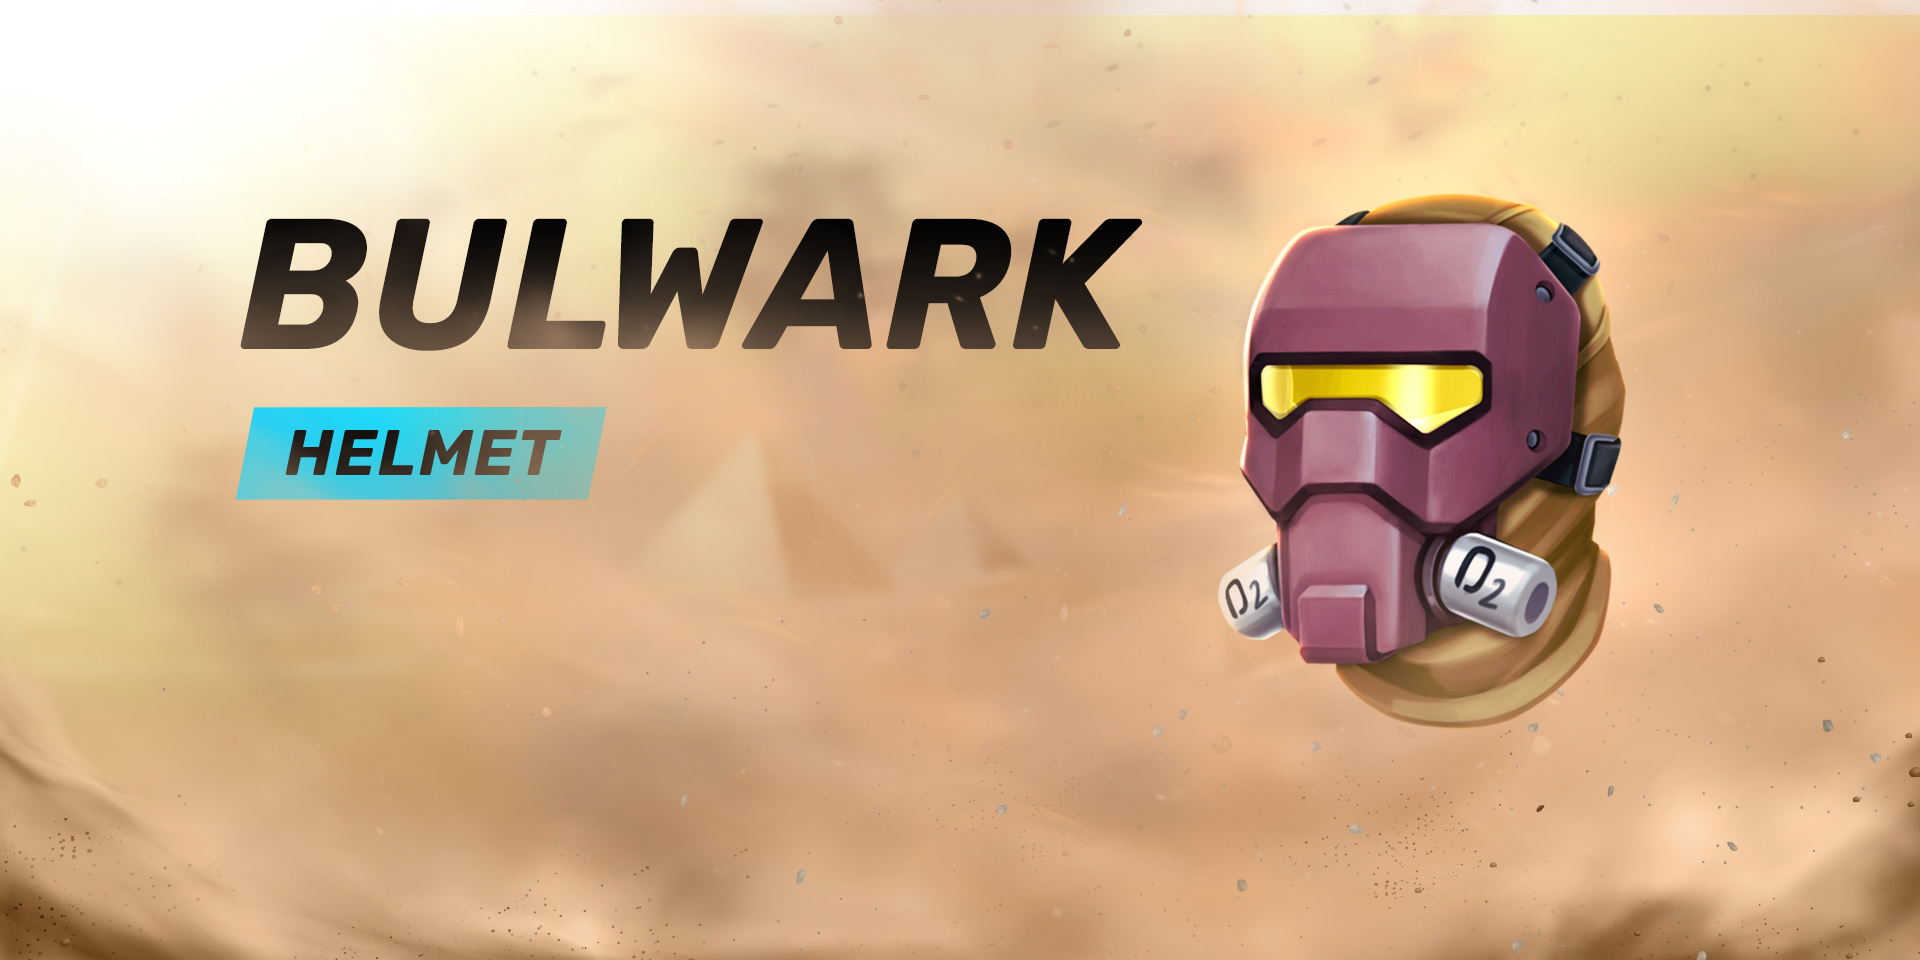 604f8701a4d4c_act2-season3-gunsopedia_header_Bulwark_EN